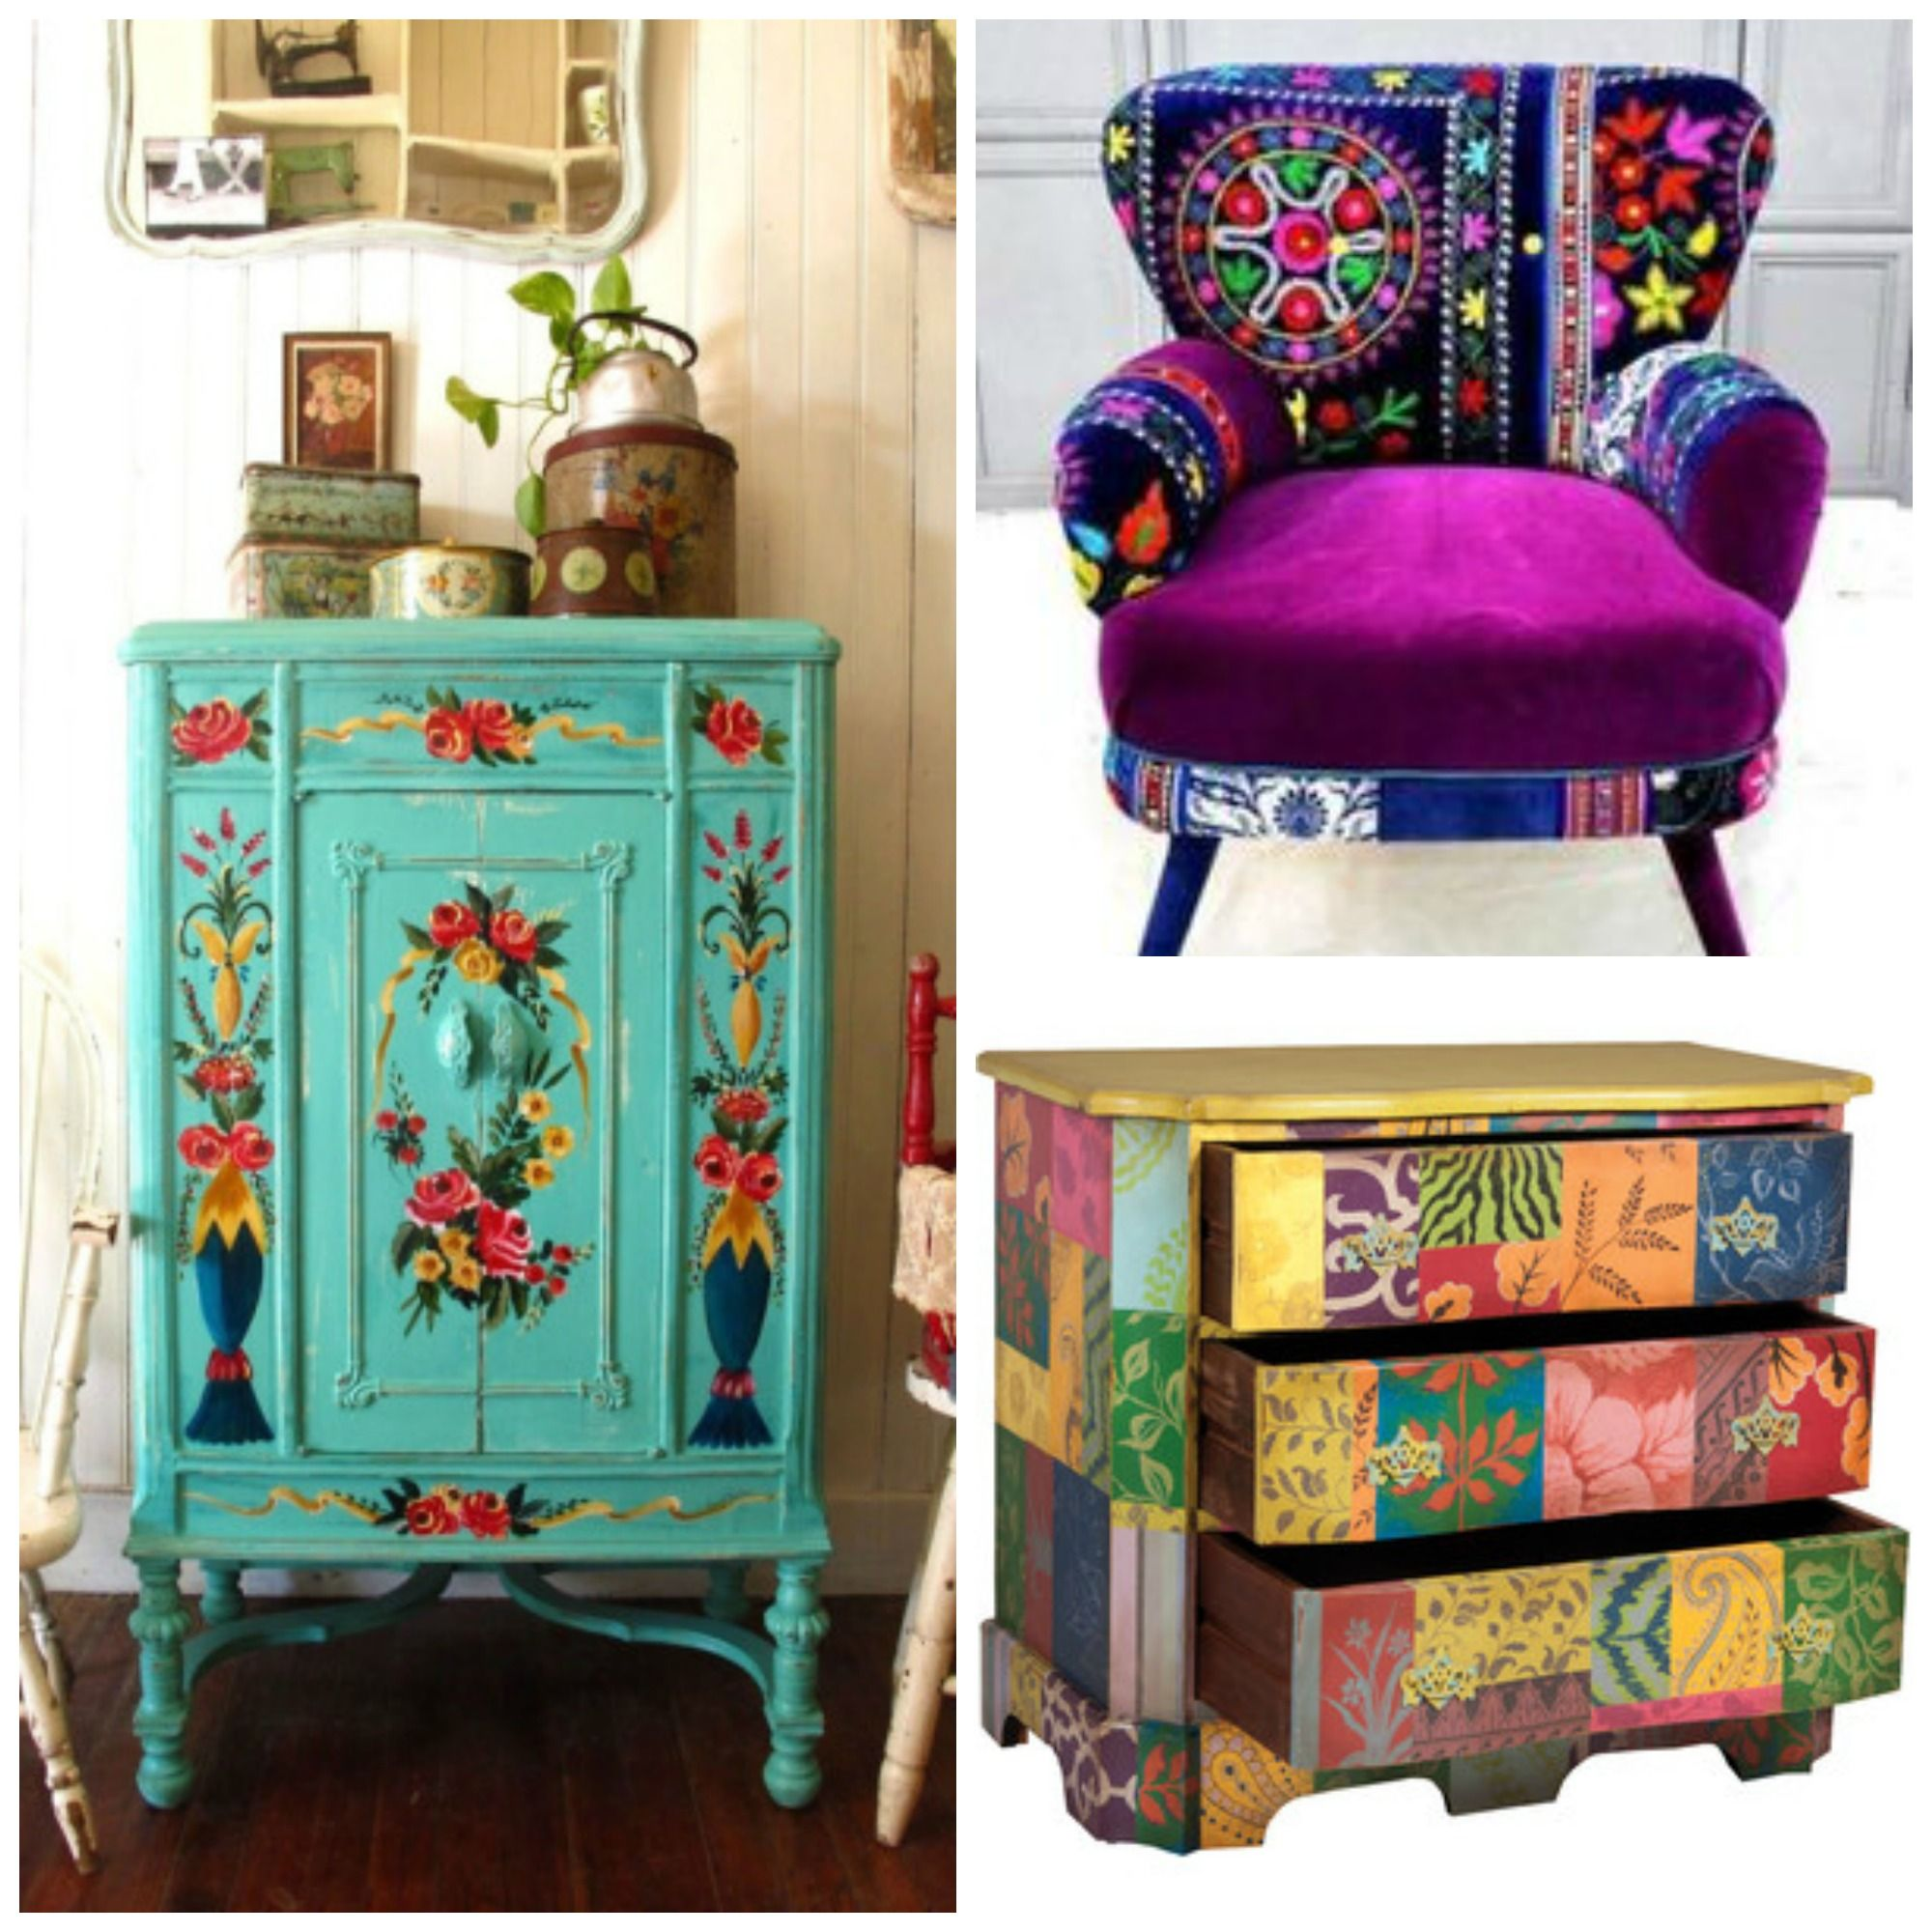 Hippie home decor bohemian interior bohemian decor style Home interior furniture